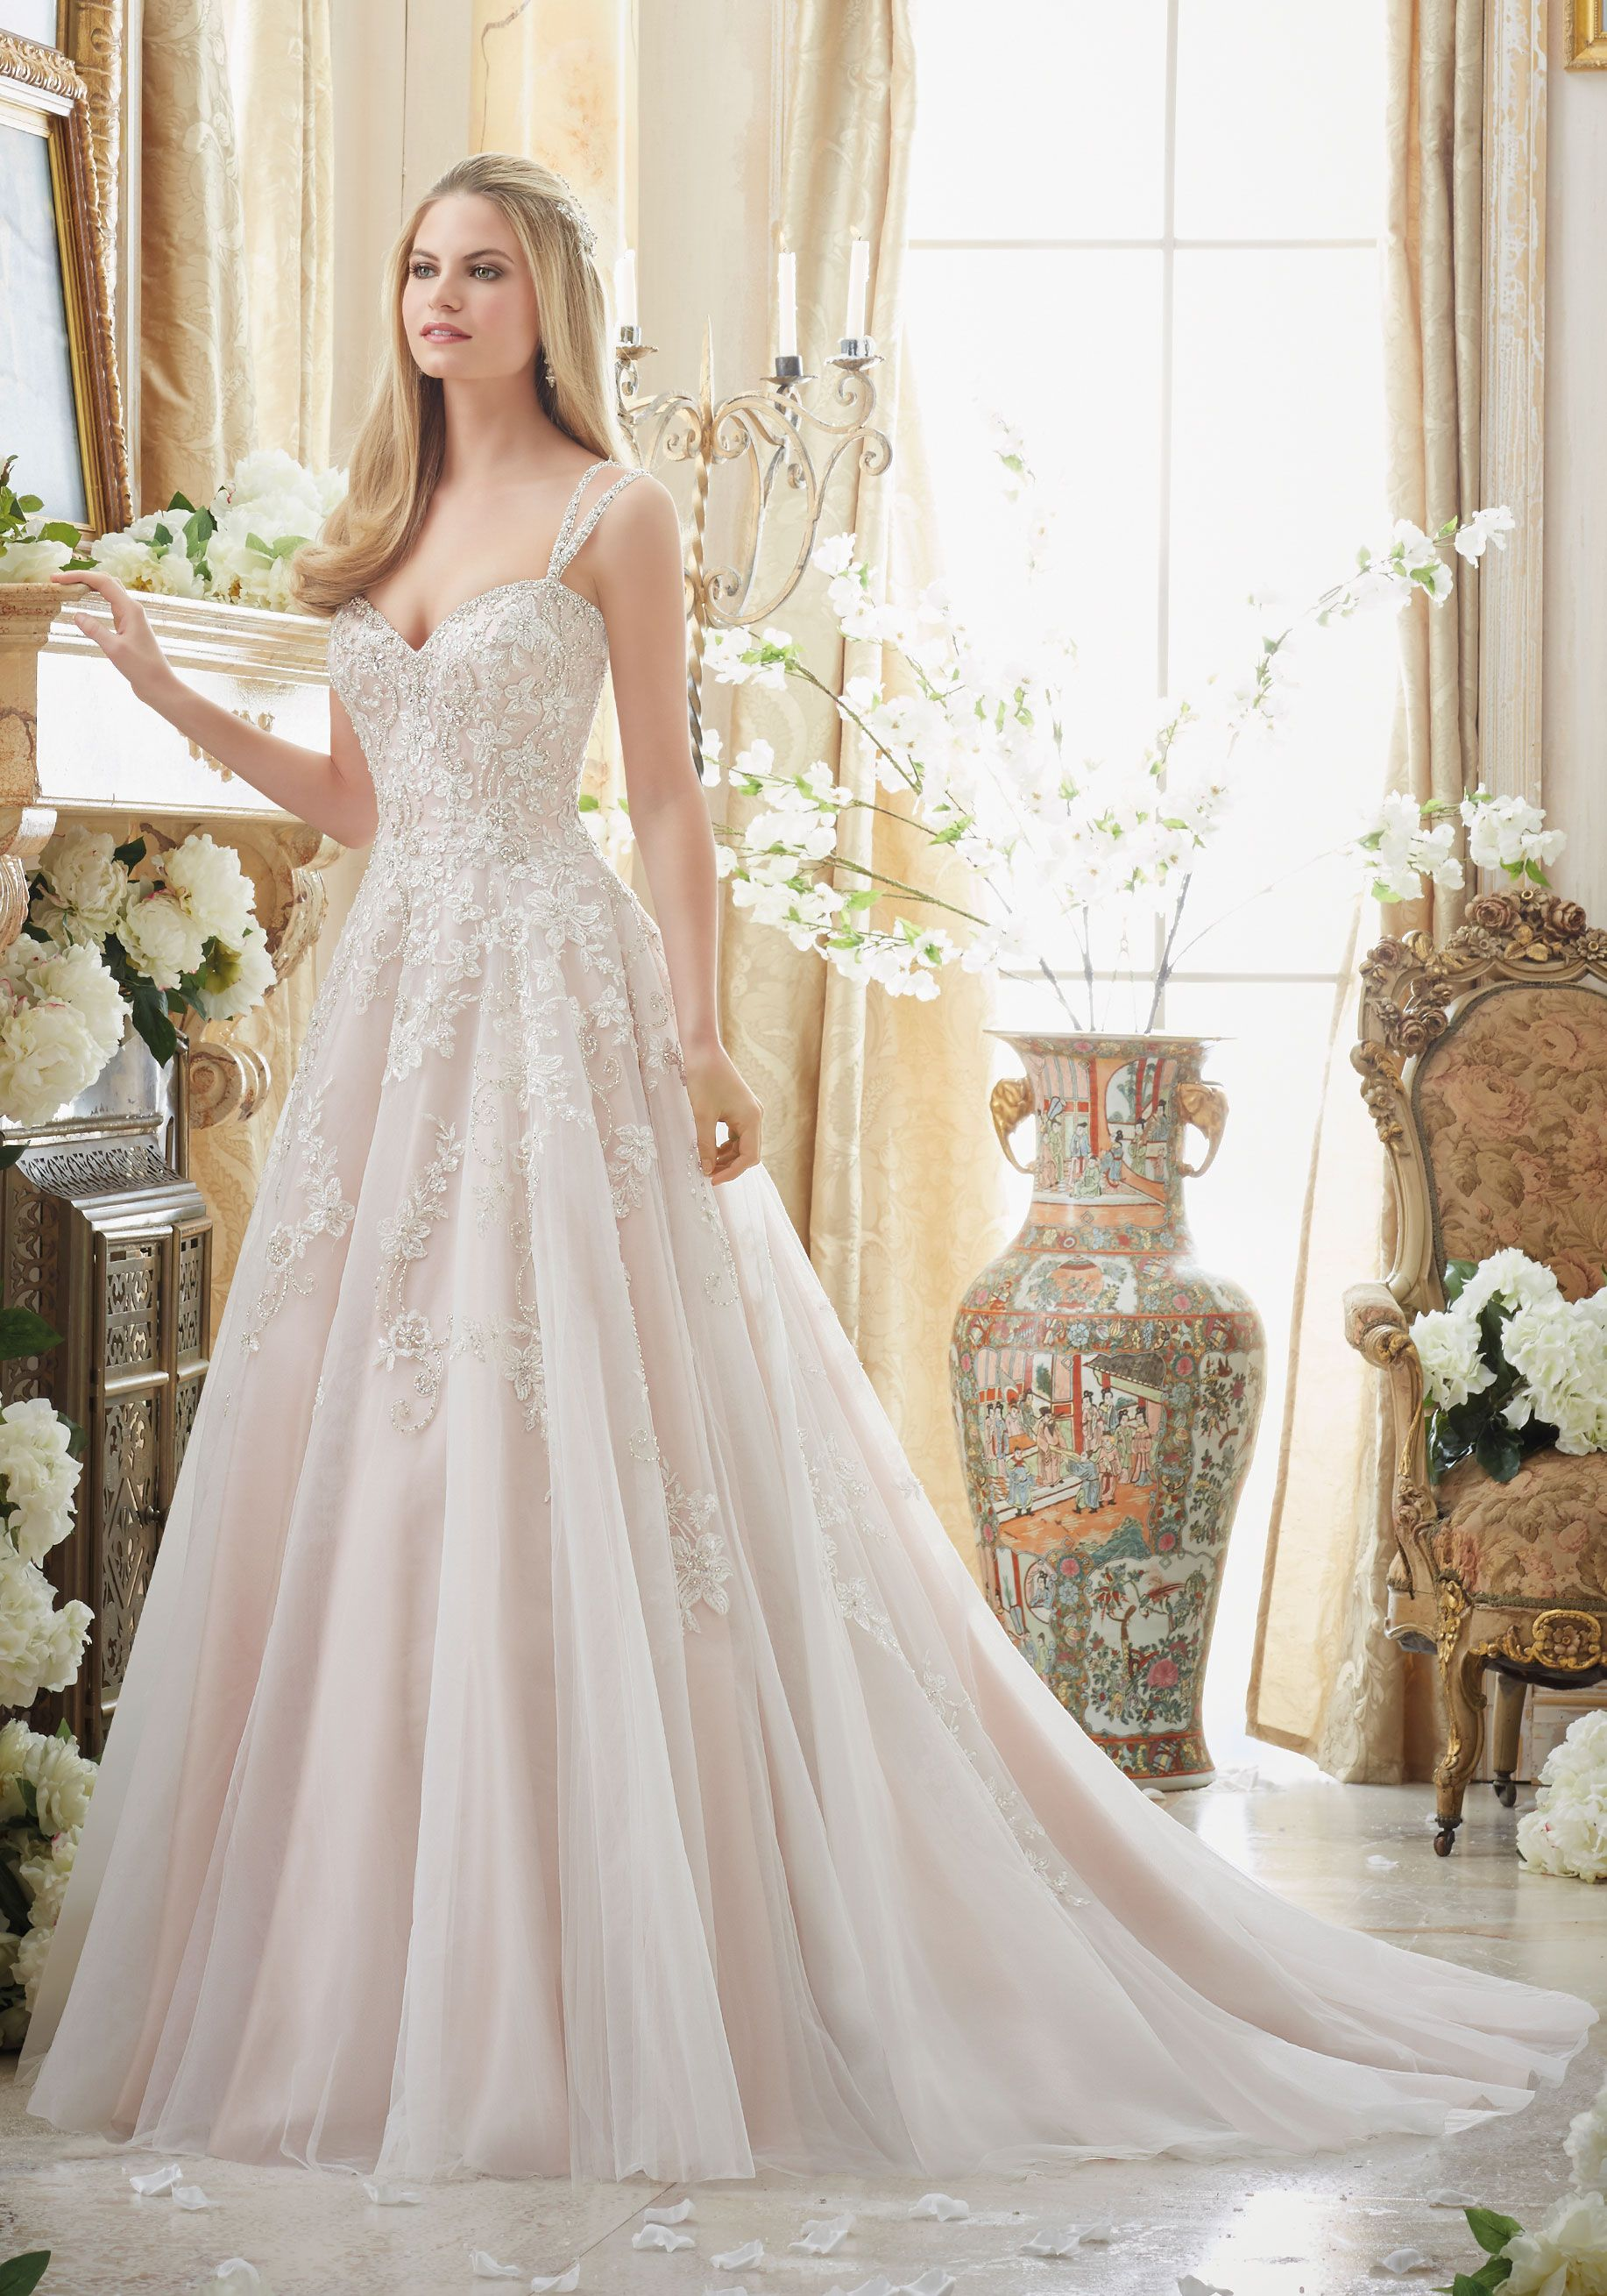 Elaborately Beaded Embroidery On Soft Tulle Ball Gown